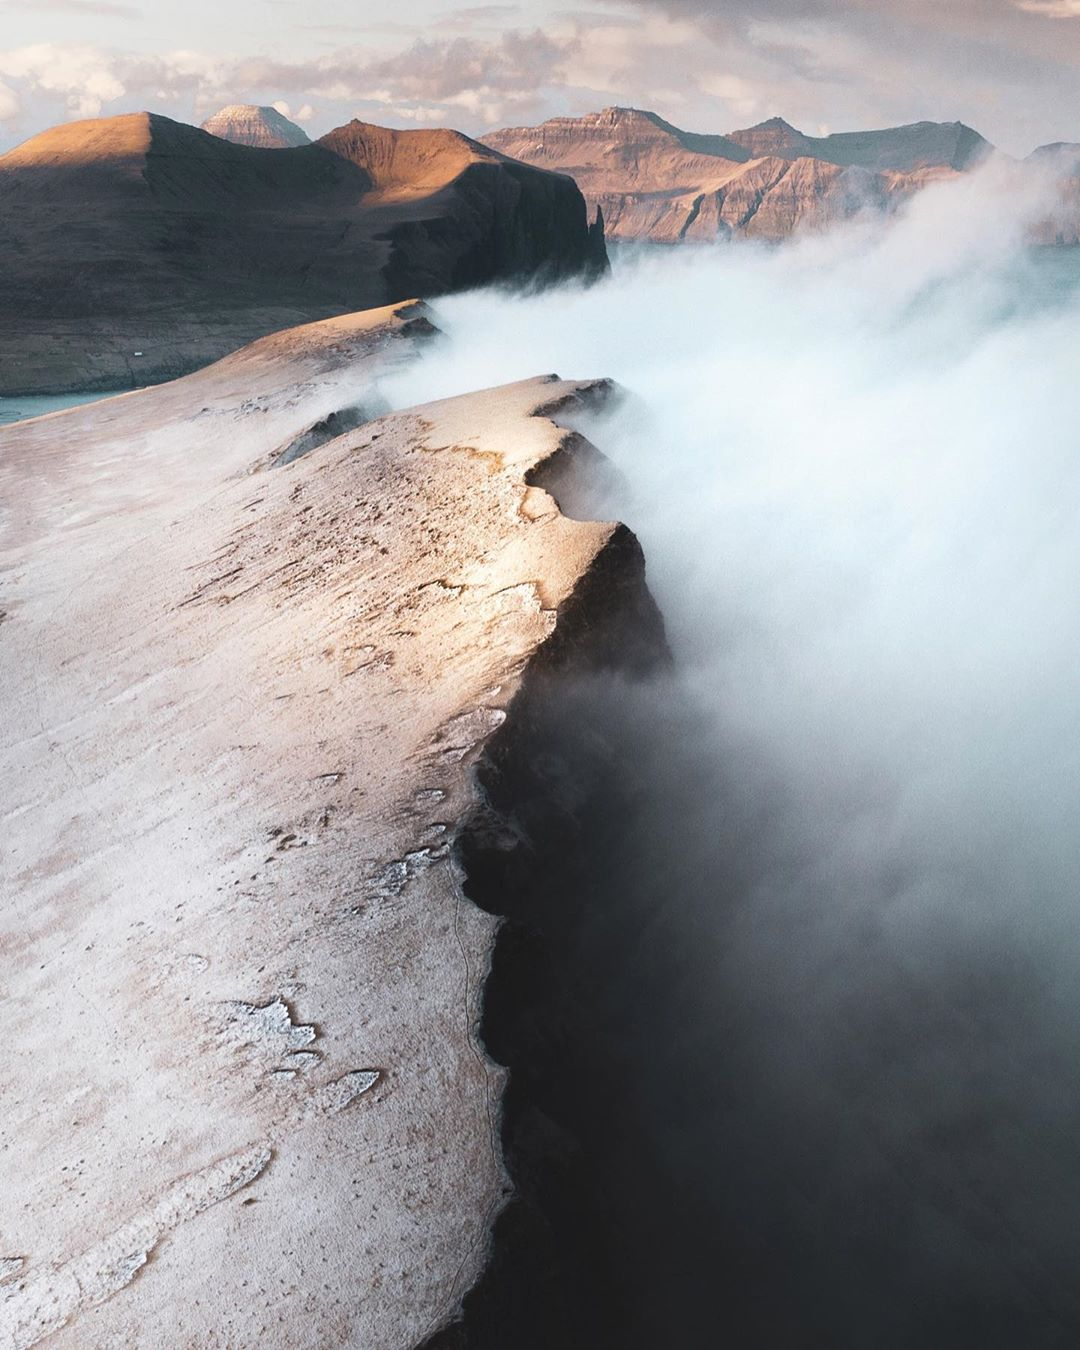 Mist, Fog, Gloom, and Poor Strips of the Sun: Welcome to Faroe Islands - Hype Gram